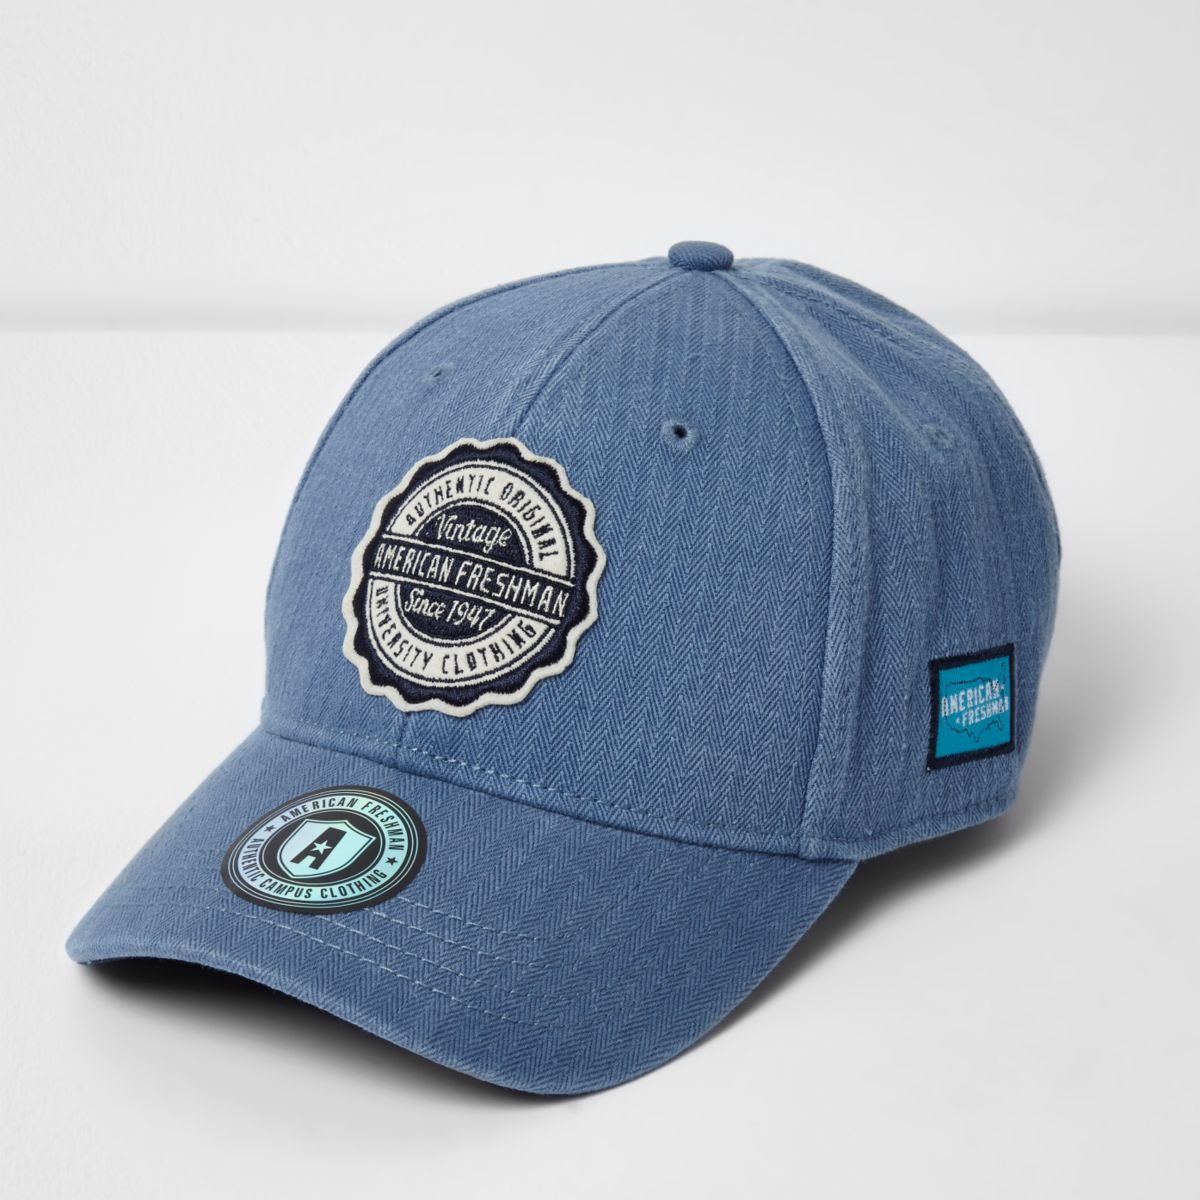 Light blue American Freshman cap